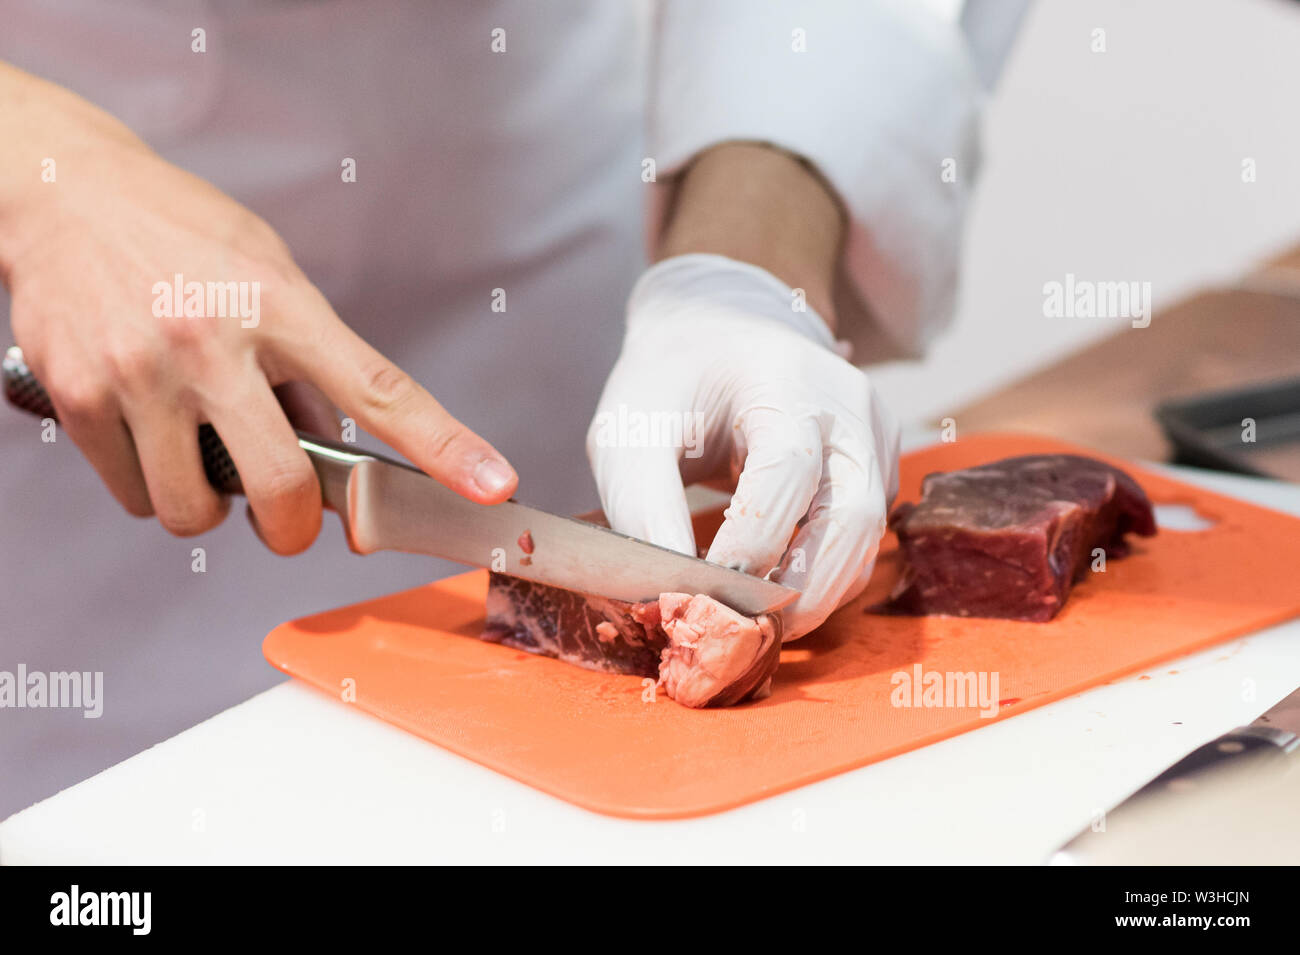 Chef cutting fresh raw meat with knife in the kitchen, Chef cutting beef on a board - Stock Image